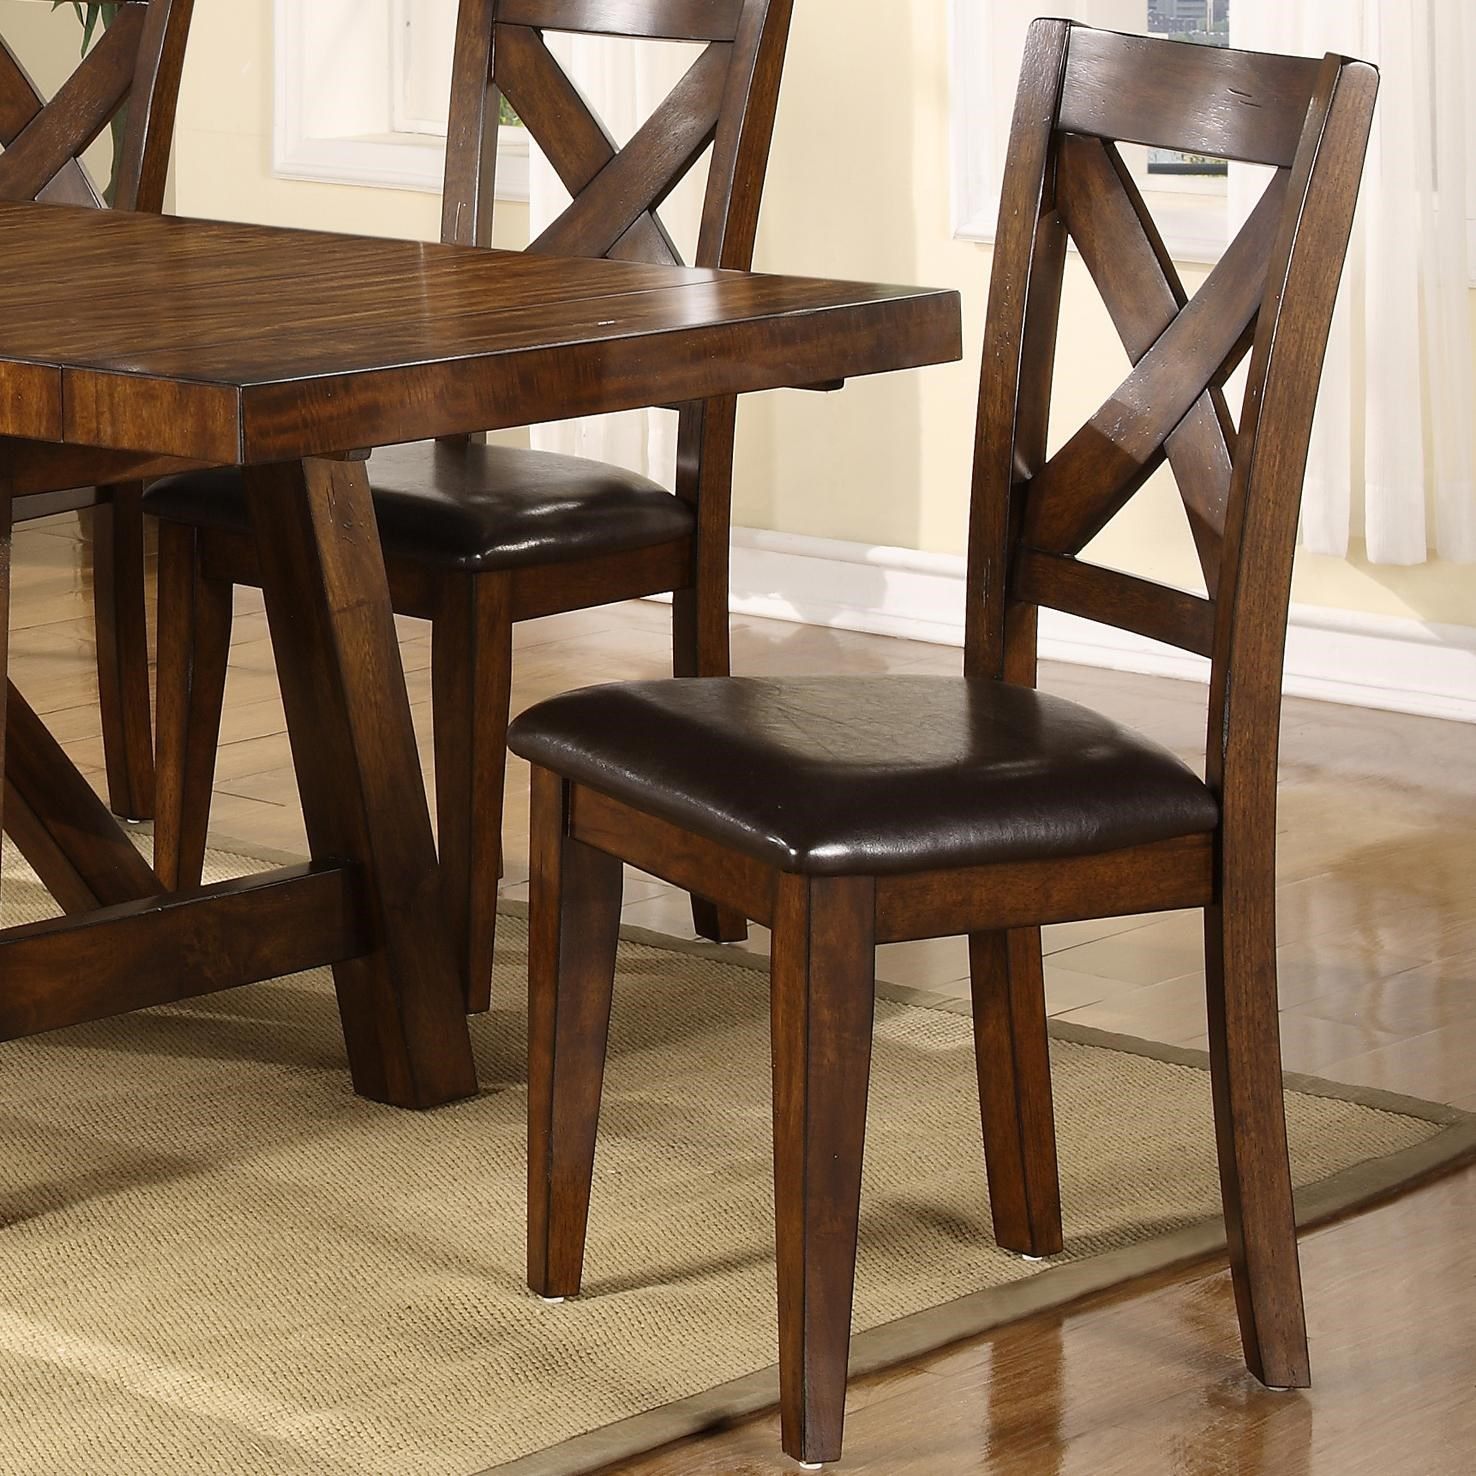 Holland House Lakeshore Dining Side Chair W/ X Back   John V Schultz  Furniture   Dining Side Chair